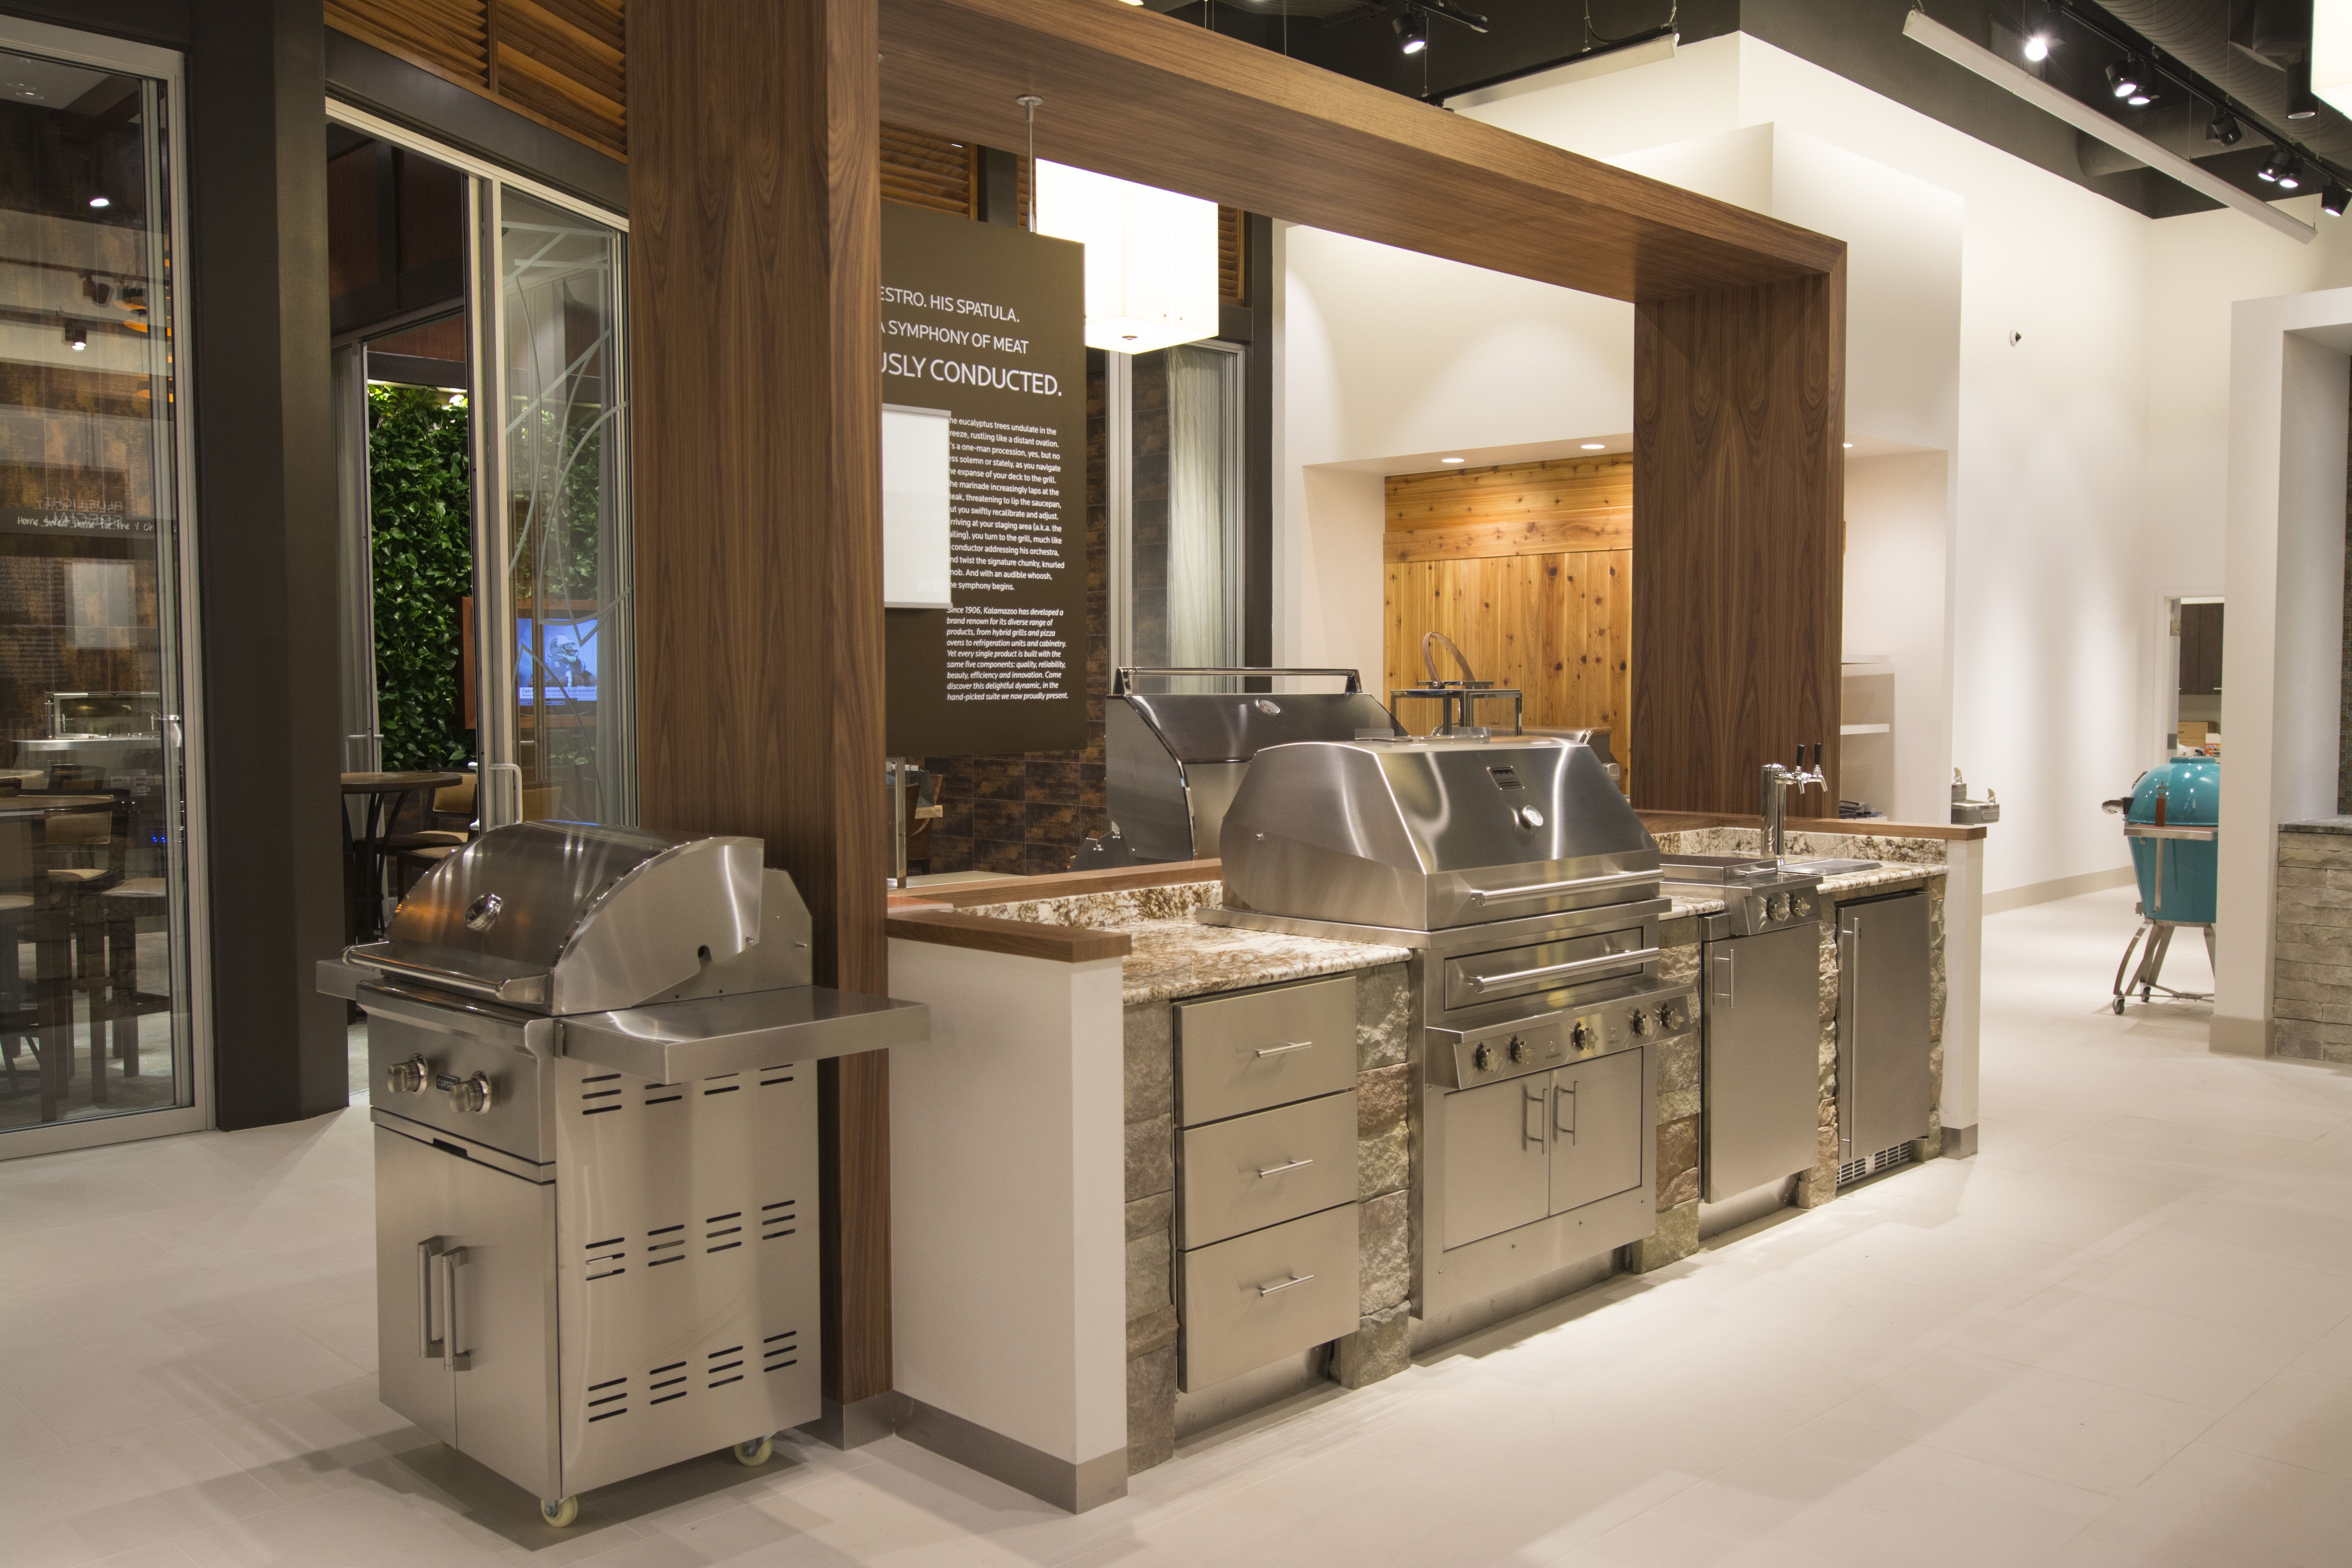 Outdoor kitchen display at PIRCH, Atlanta featuring